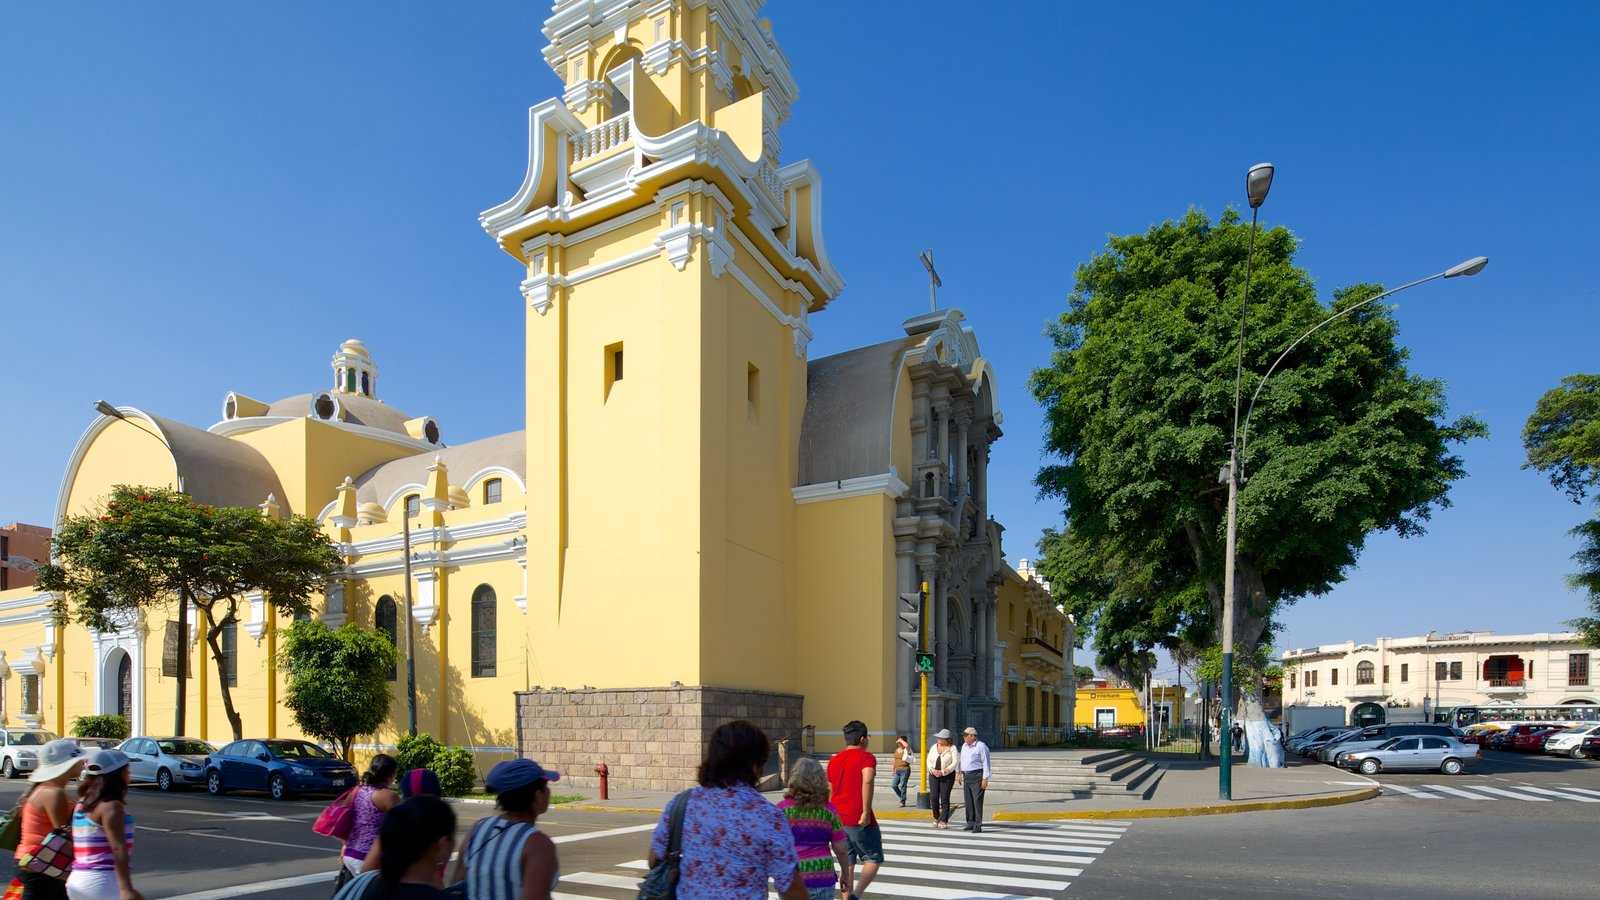 Barranco which includes street scenes as well as a large group of people